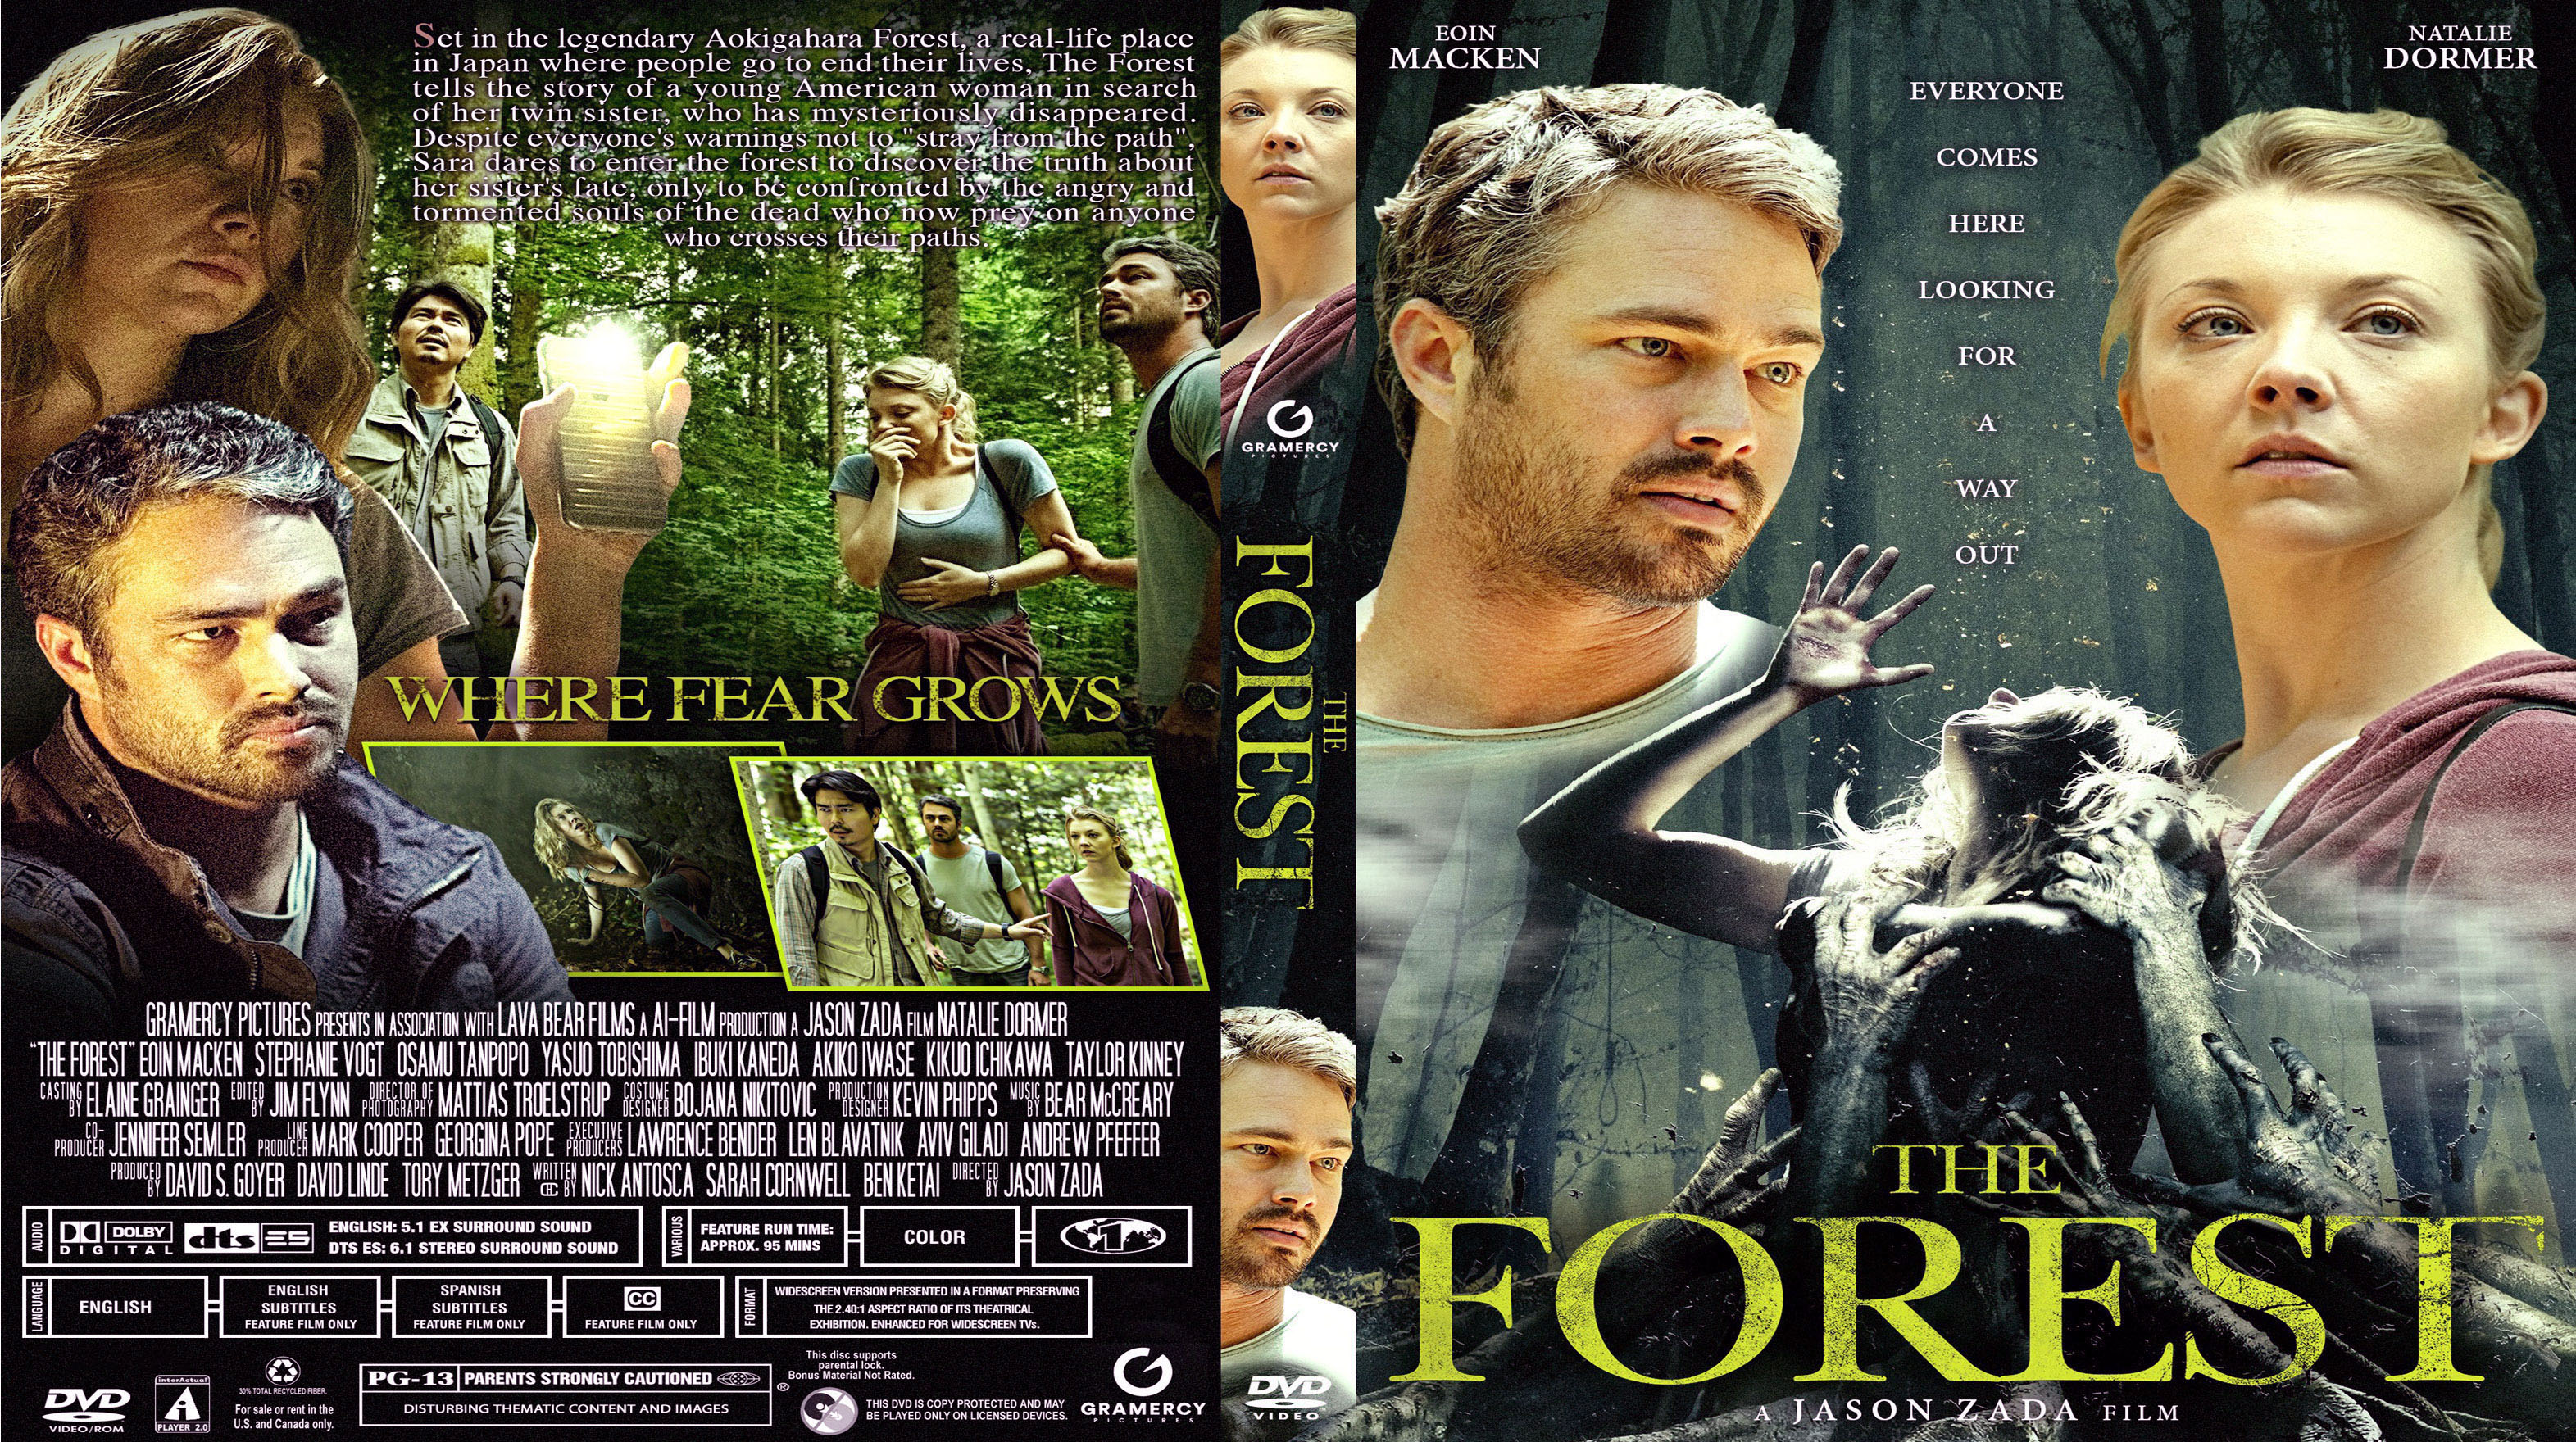 covers box sk the forest 2016 high quality dvd blueray movie